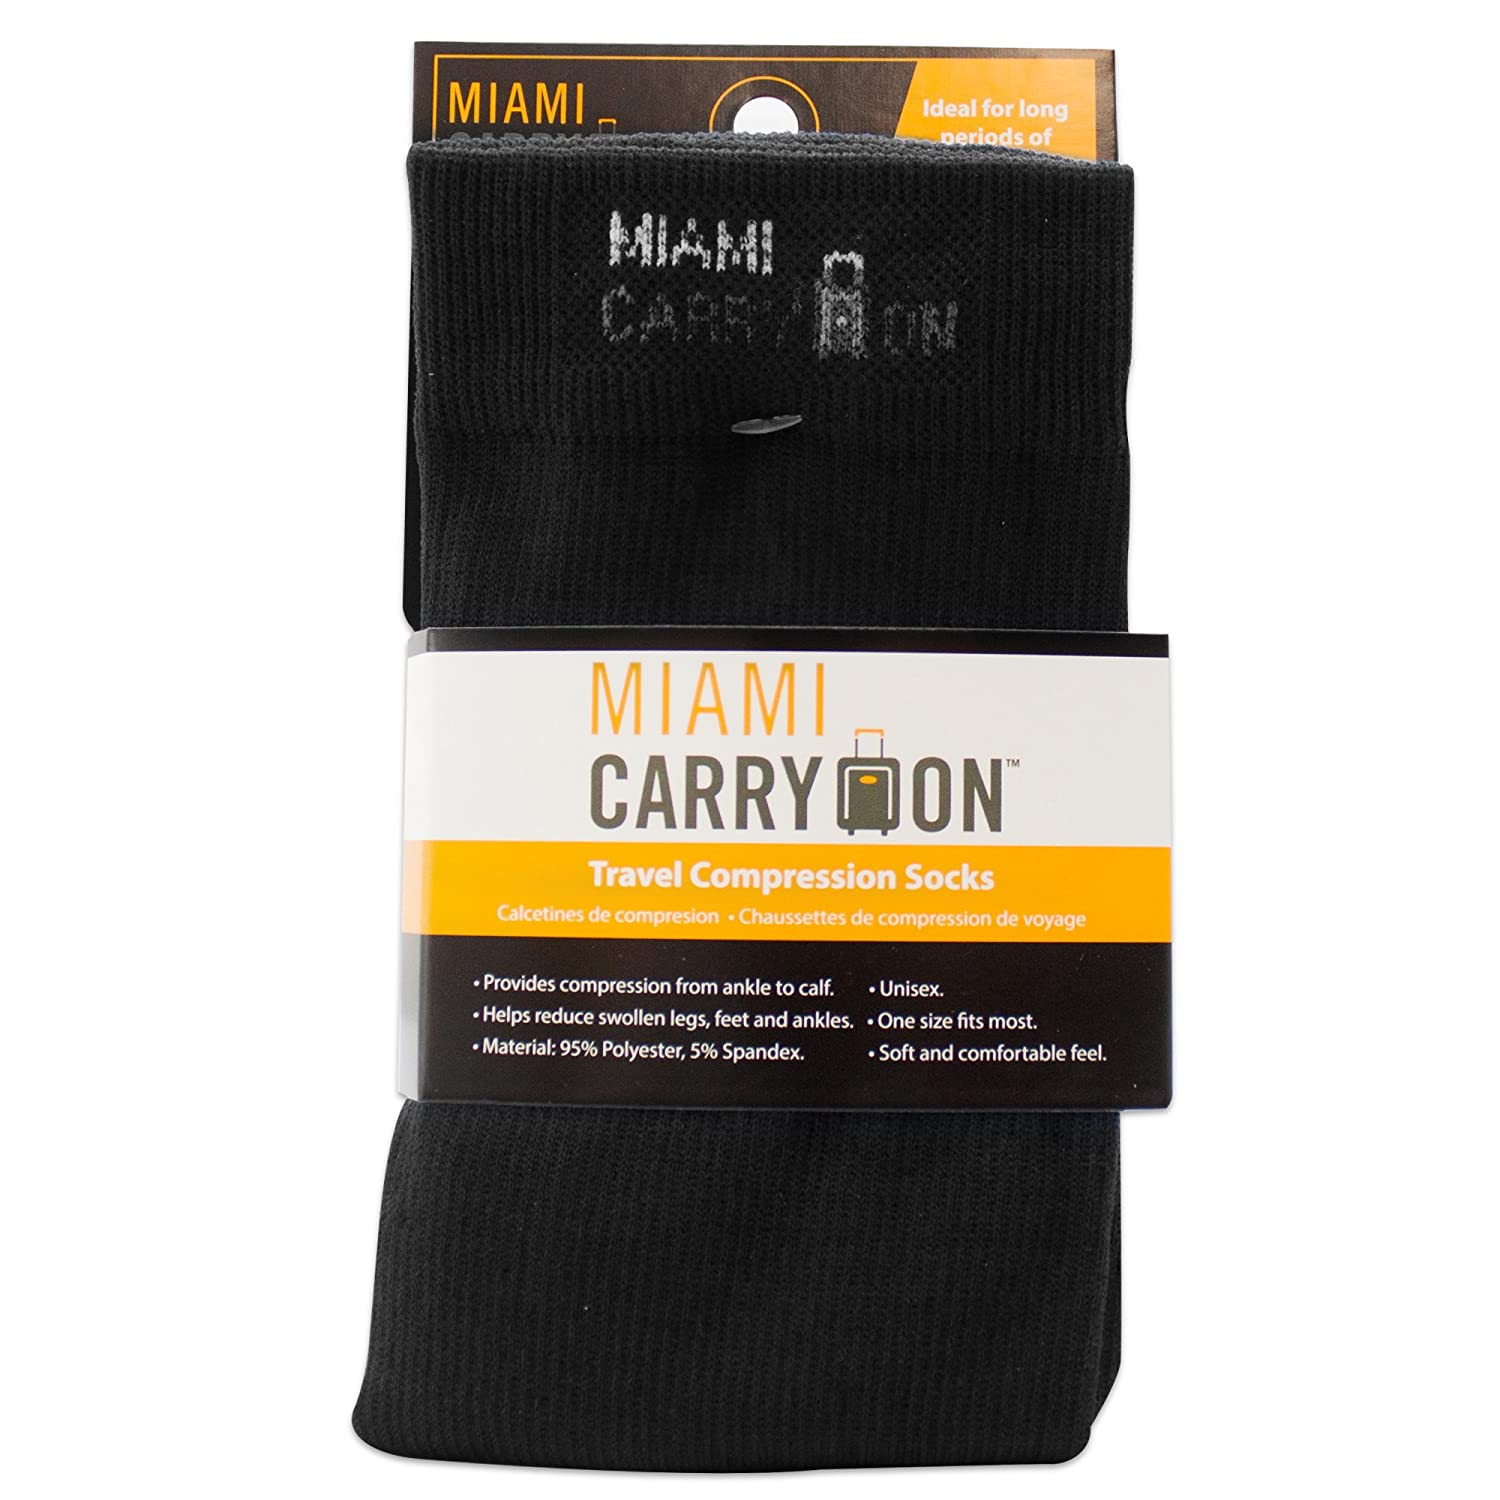 Amazon.com: Miami CarryOn Compression Socks - Best Socks for Travel, Running, Athletes, Pregnancy, Medical, Varicose Veins, Edema, Diabetic - One Size ...